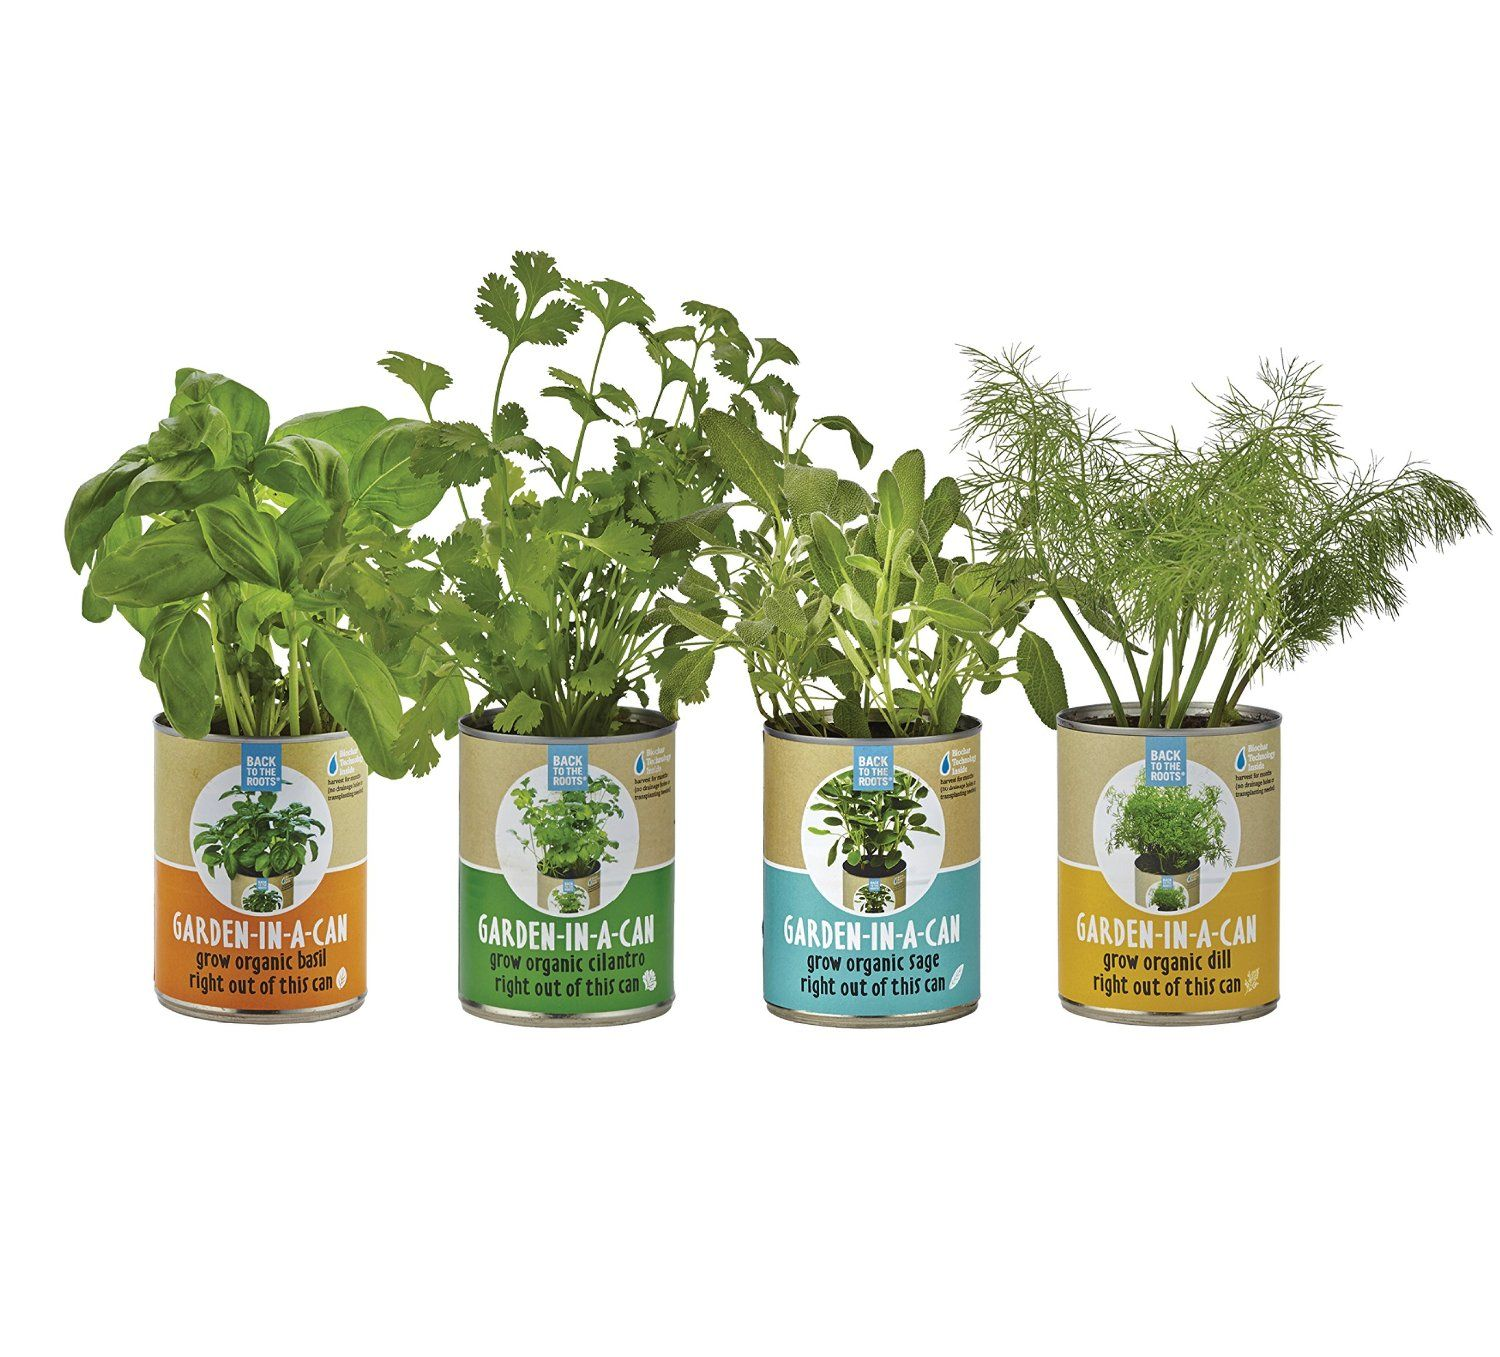 Garden In A Can  #GardenInACan  #Gardens  #Cans  #BackToTheRoots  #Back  #Roots  #Grow  #Organic  #Herbs  #Basil  #Cilantro  #Dill  #Sage  #Hobbies  #Kamisco